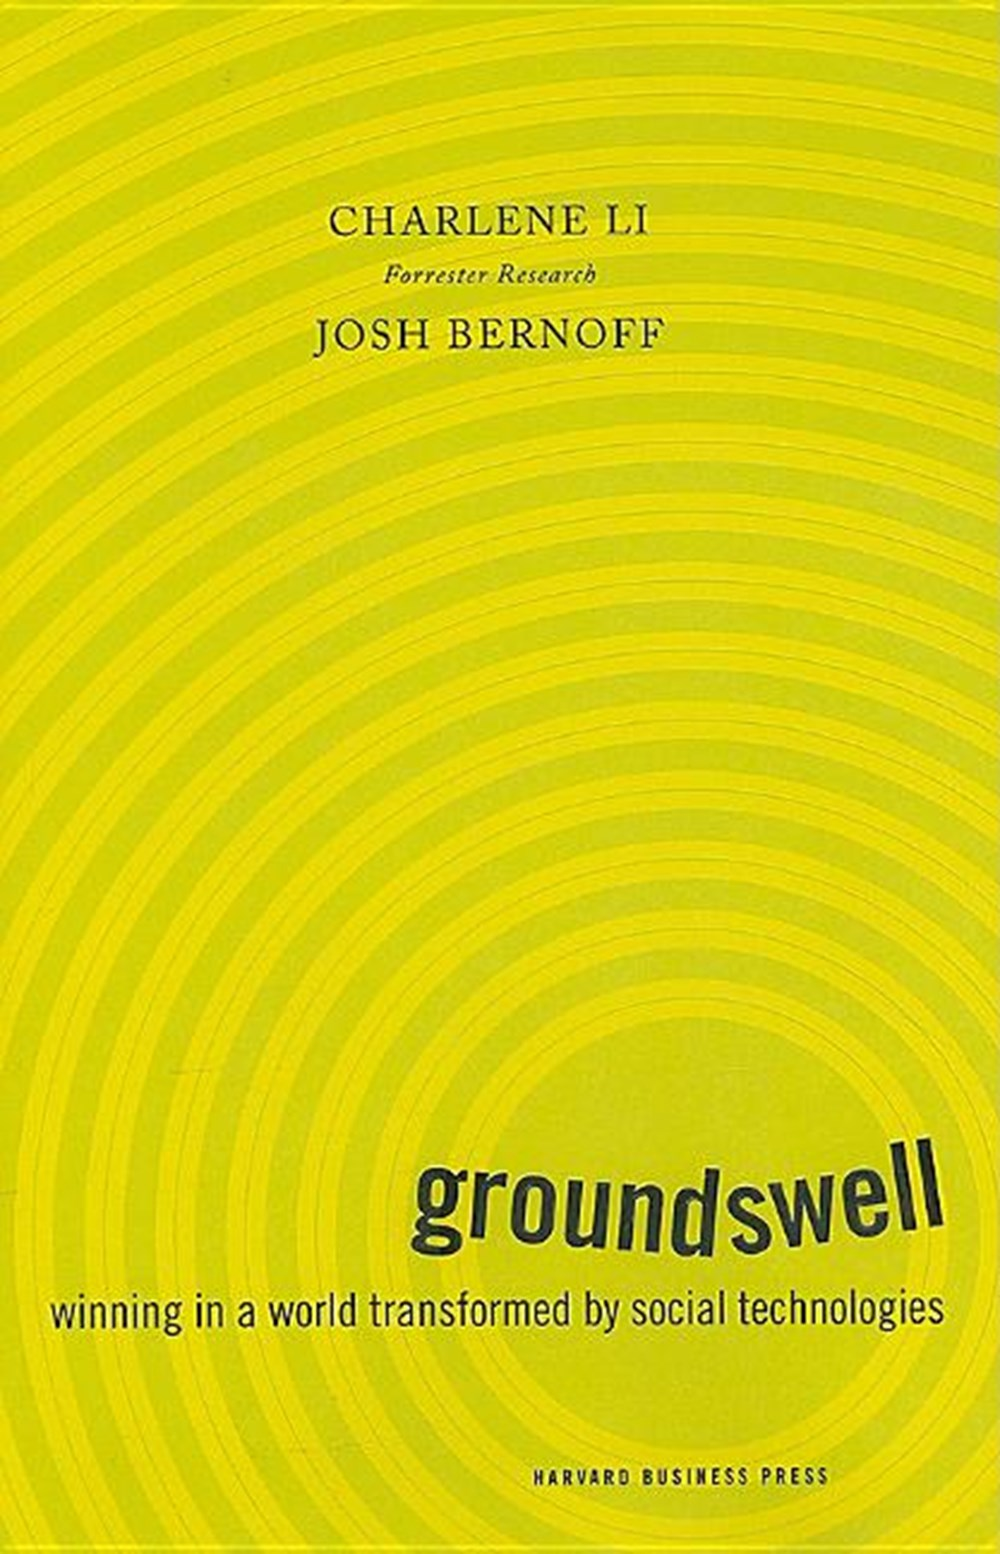 Groundswell Winning in a World Transformed by Social Technologies (Expanded, Revised)